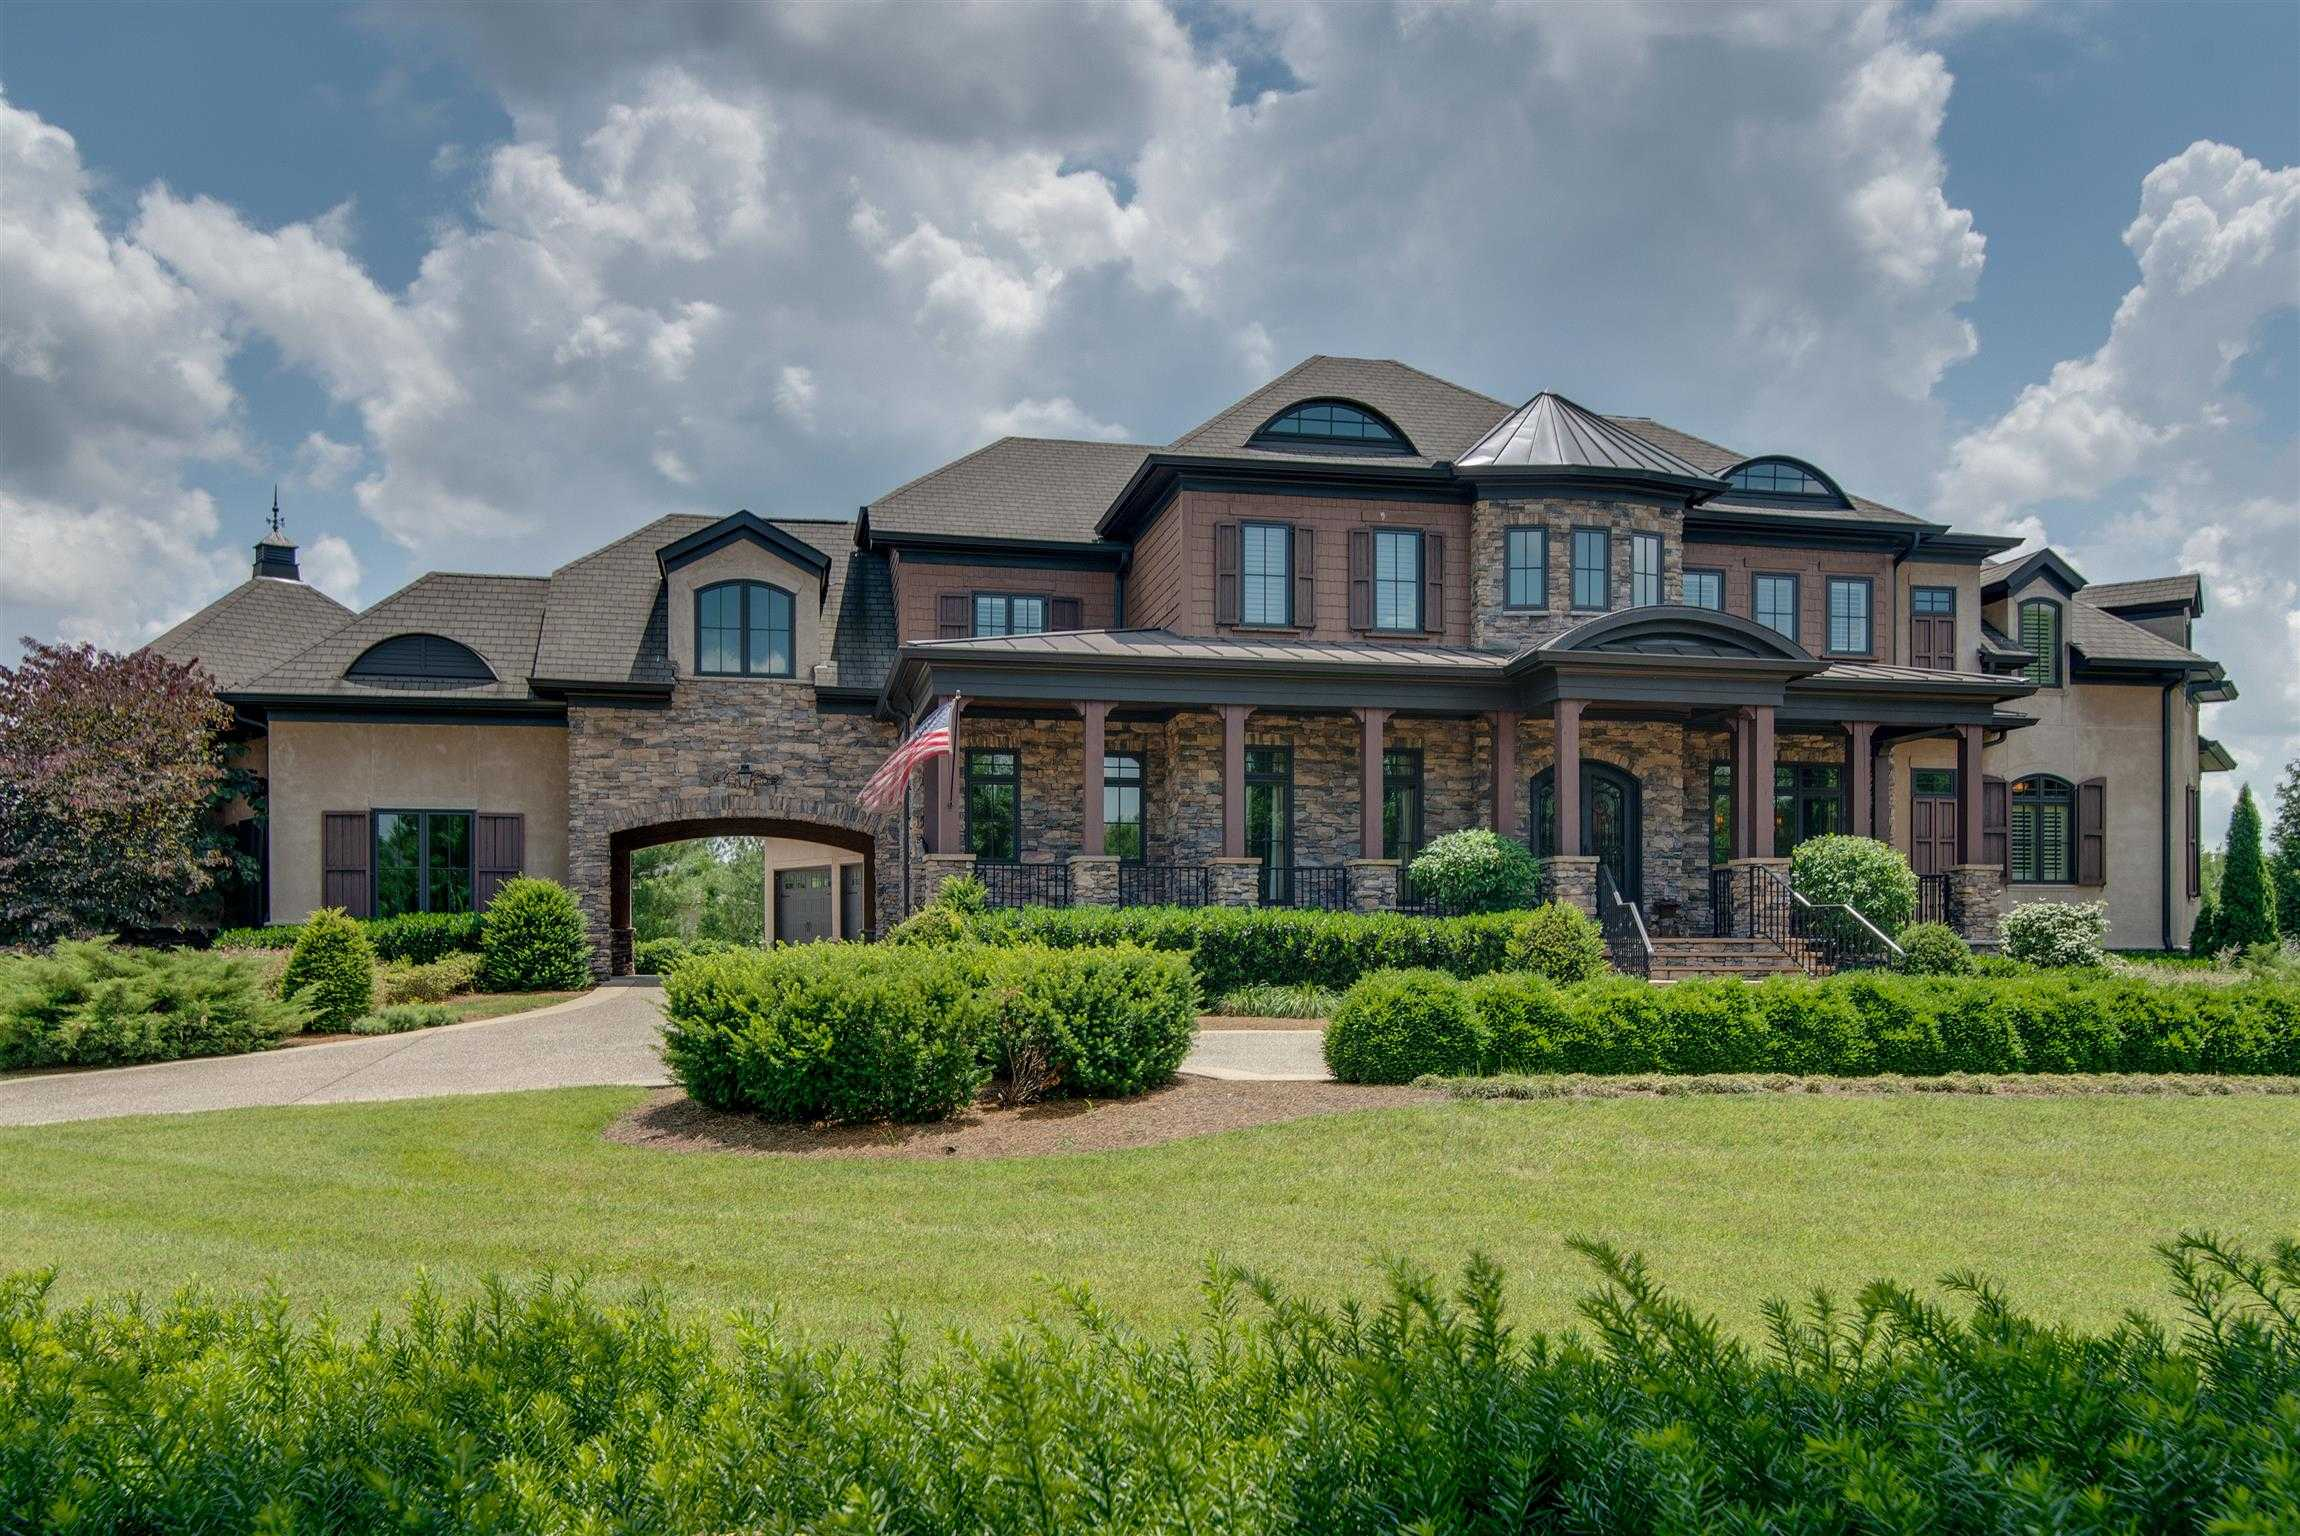 $2,290,000 - 6Br/7Ba -  for Sale in Annandale Sec 3, Brentwood